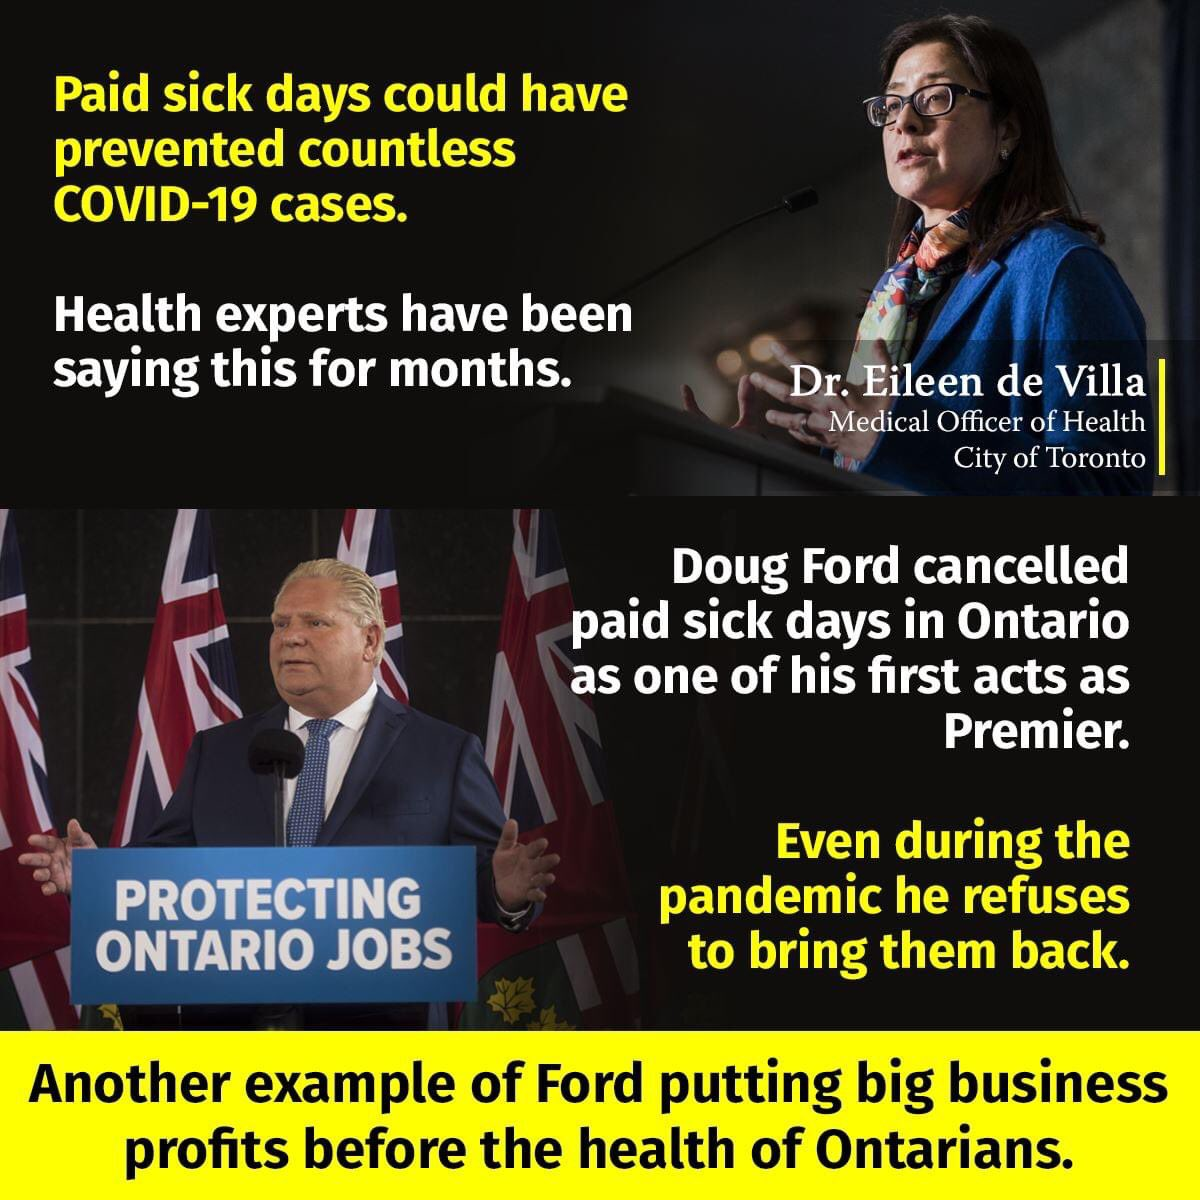 @StanChoMPP The fact that COVID-19 was let to get so out of control in #Ontario is all on the way YOU & YOUR INCOMPETENT GOVERNMENT HAVE NO PLAN! #StanChoMustGo #VoteFordOut2022